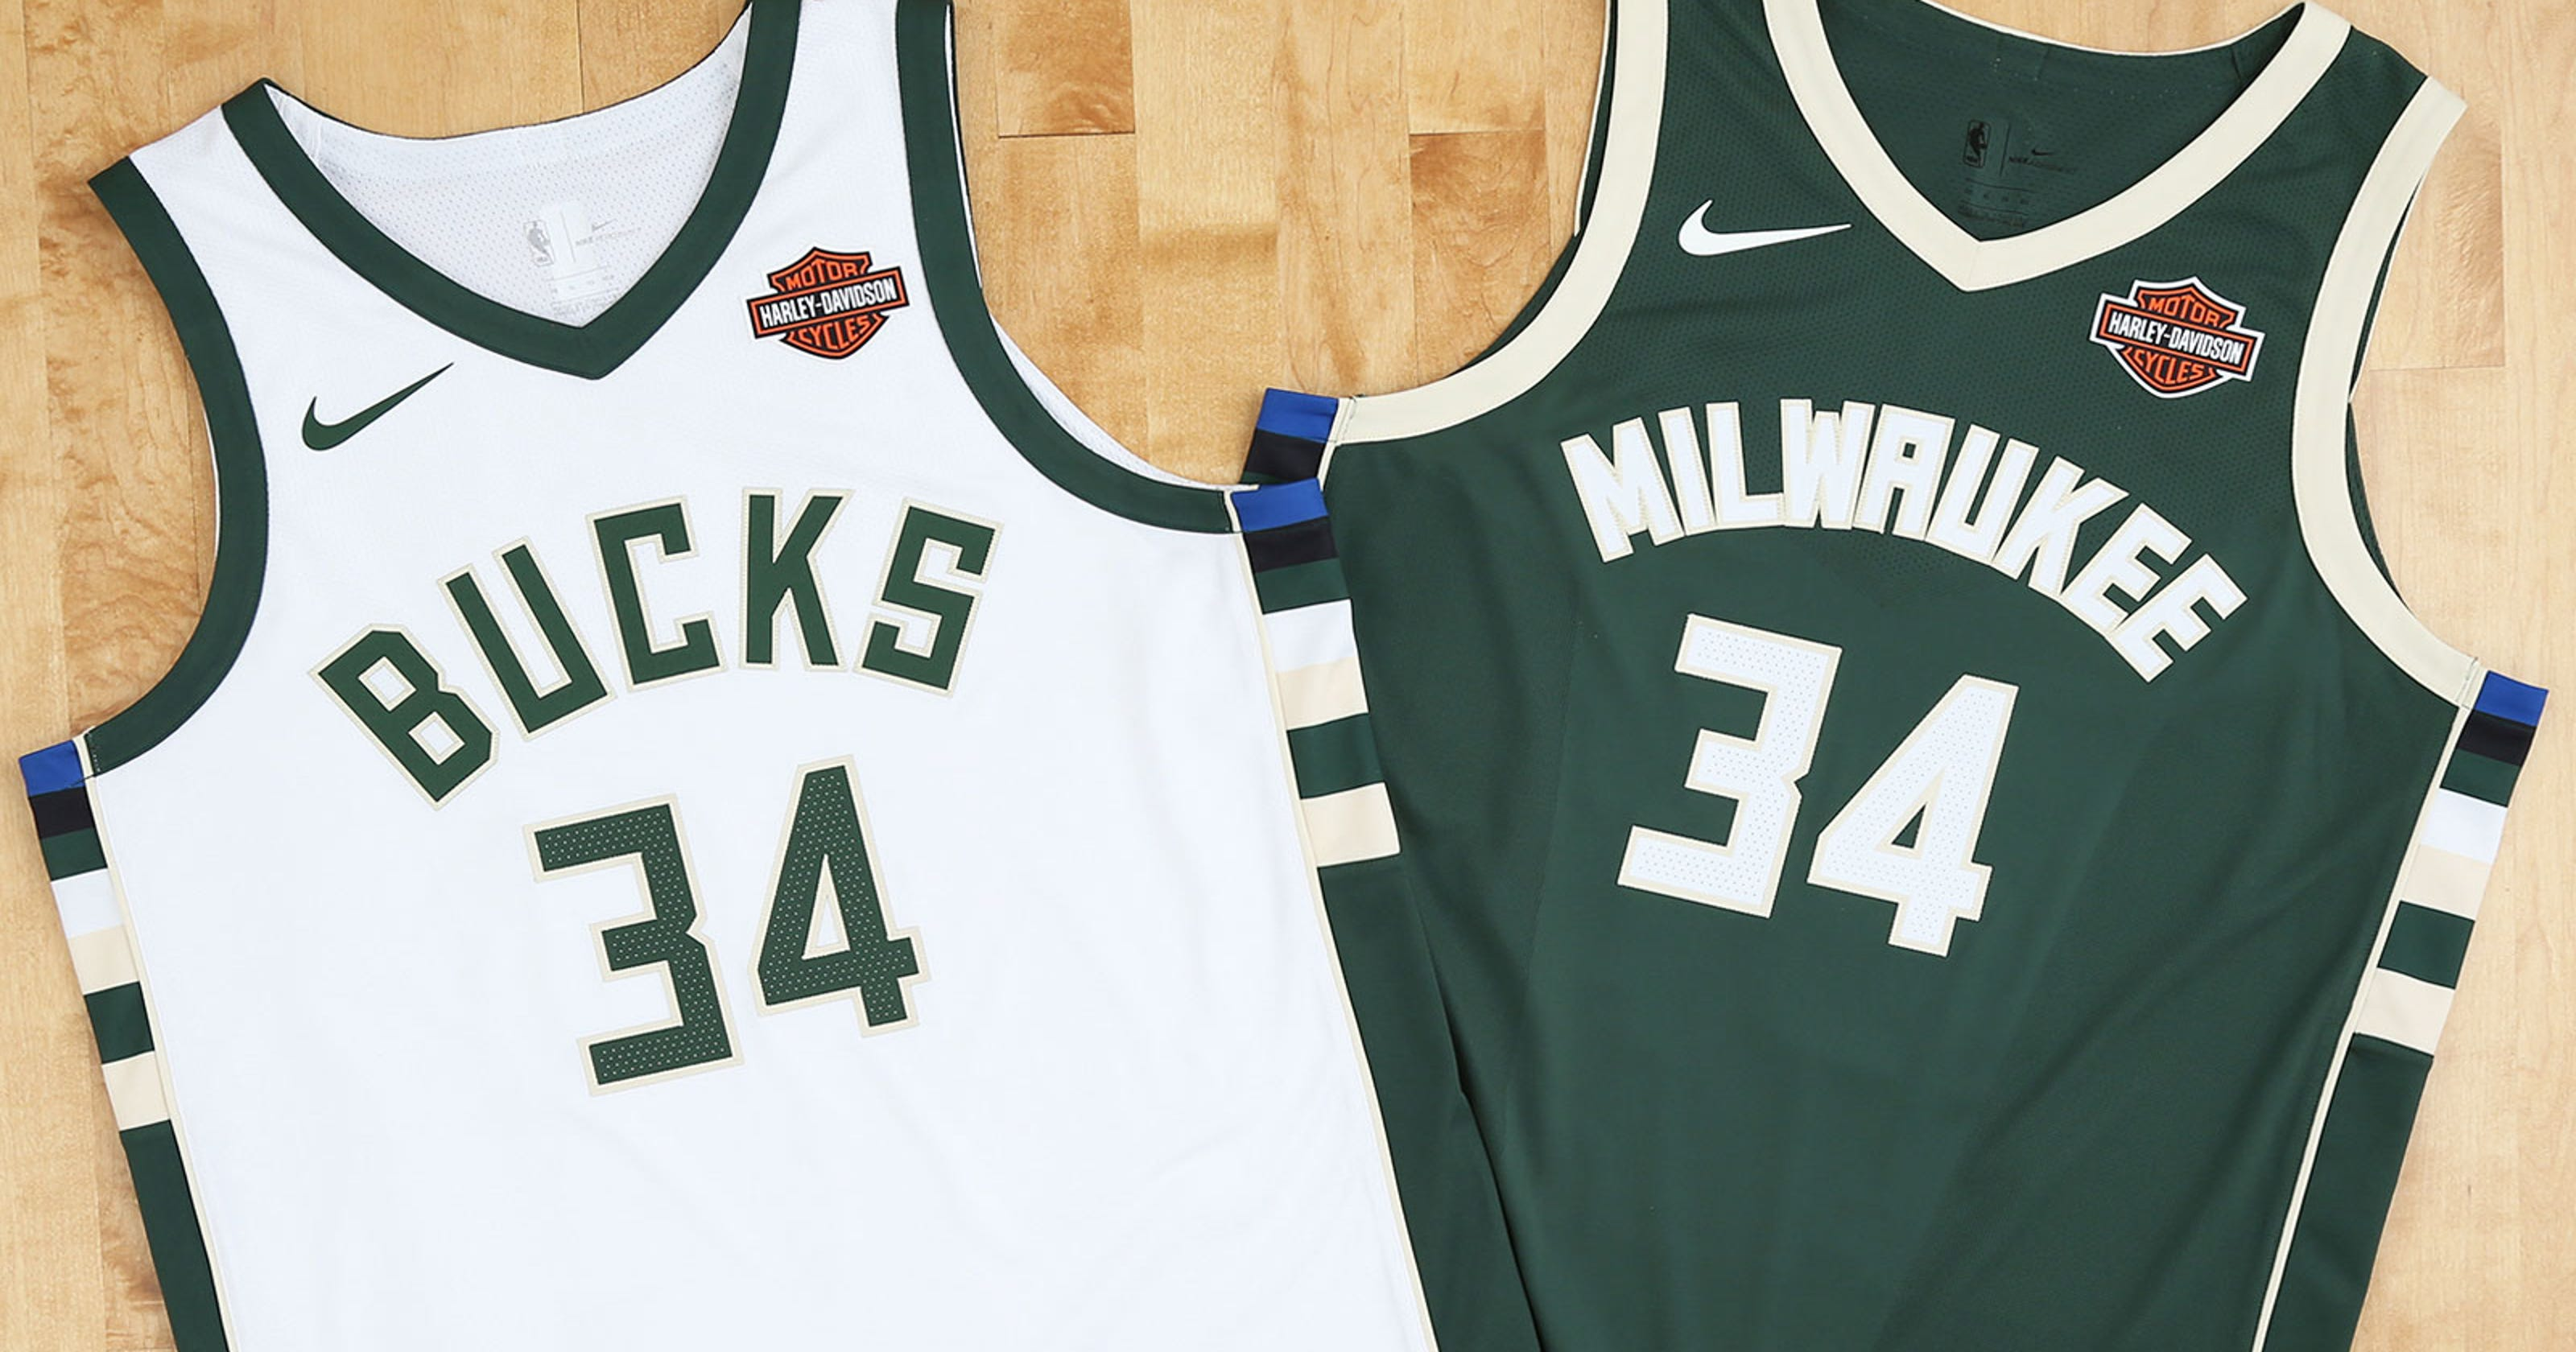 eecfac52cfbe Milwaukee Bucks game jerseys to feature Harley-Davidson advertising patch  starting in 2017- 18